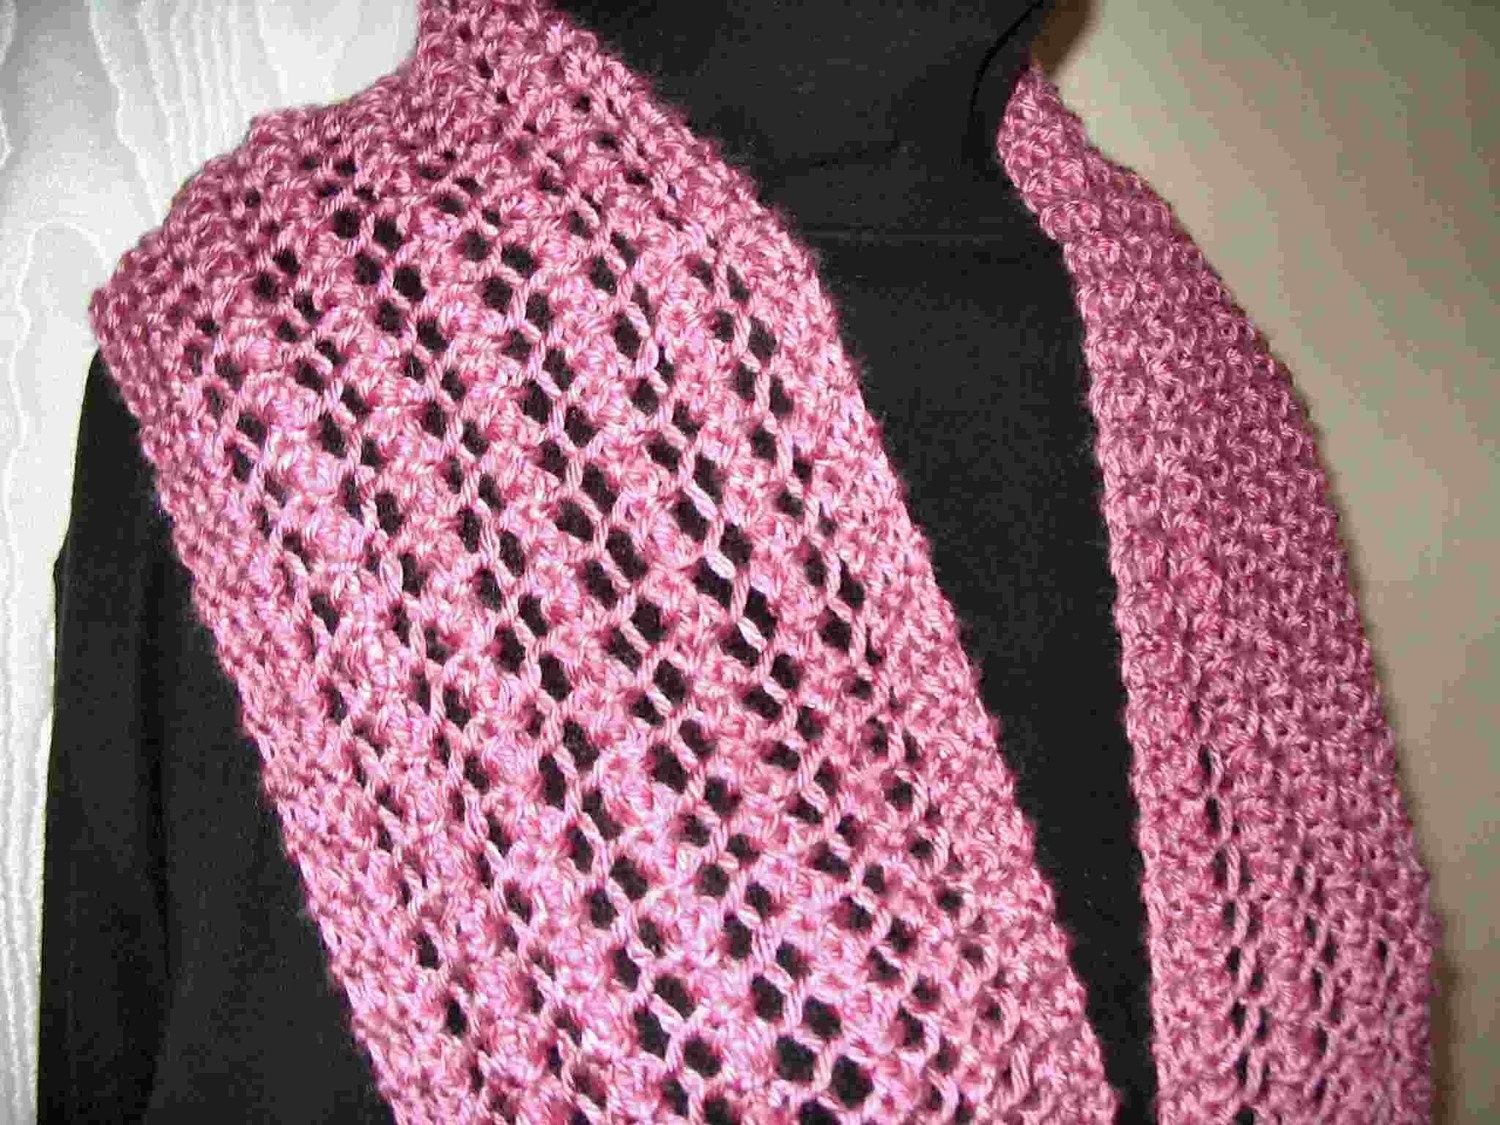 Simple Lace Knitting Pattern For Scarf : Knitted lace scarf Four patterns in One Easy to knit one row